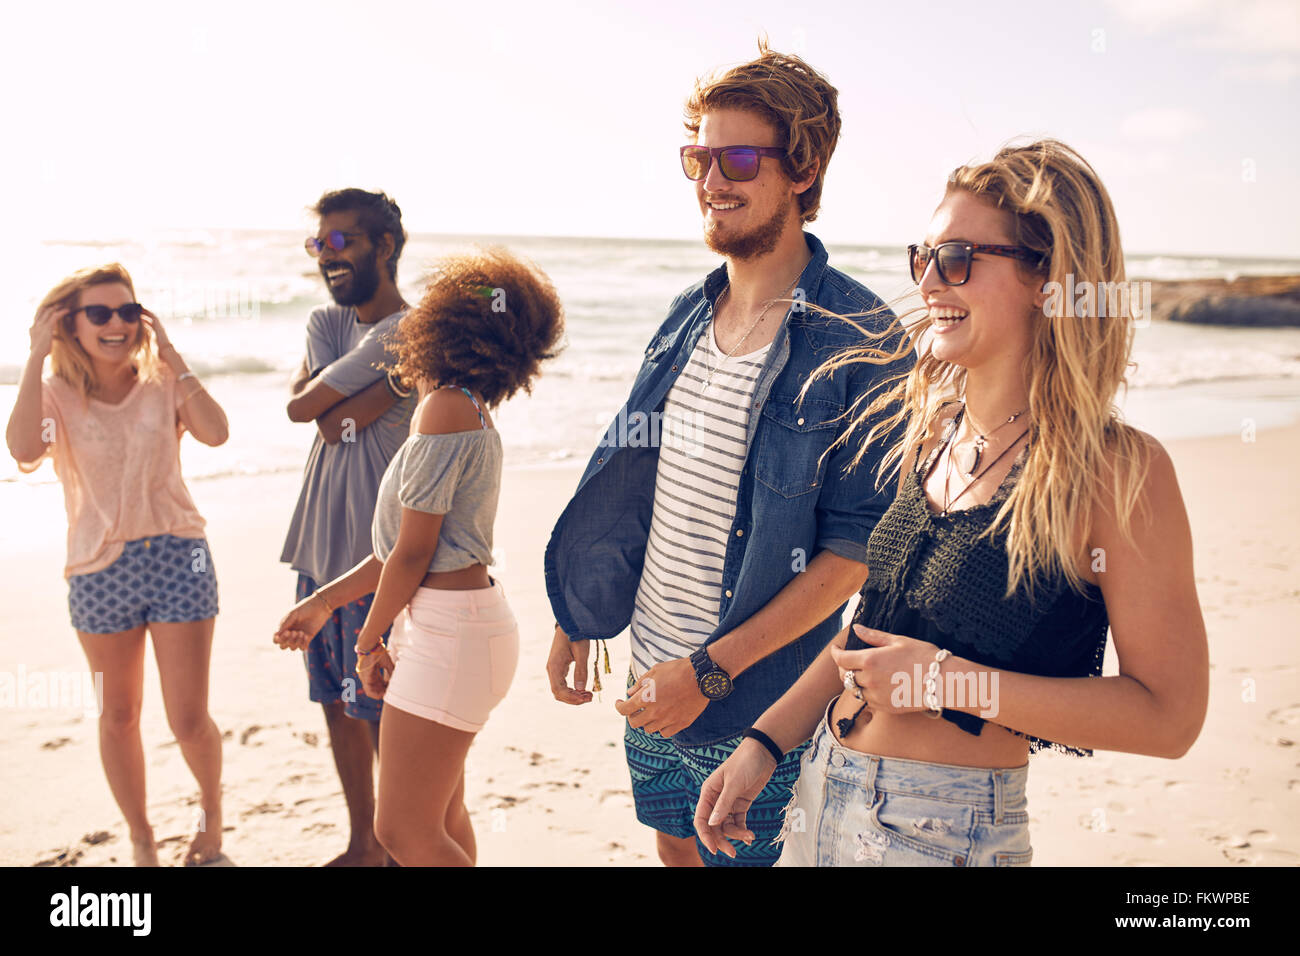 Group of friends walking along a beach at summertime. Happy young people enjoying a day at beach. - Stock Image